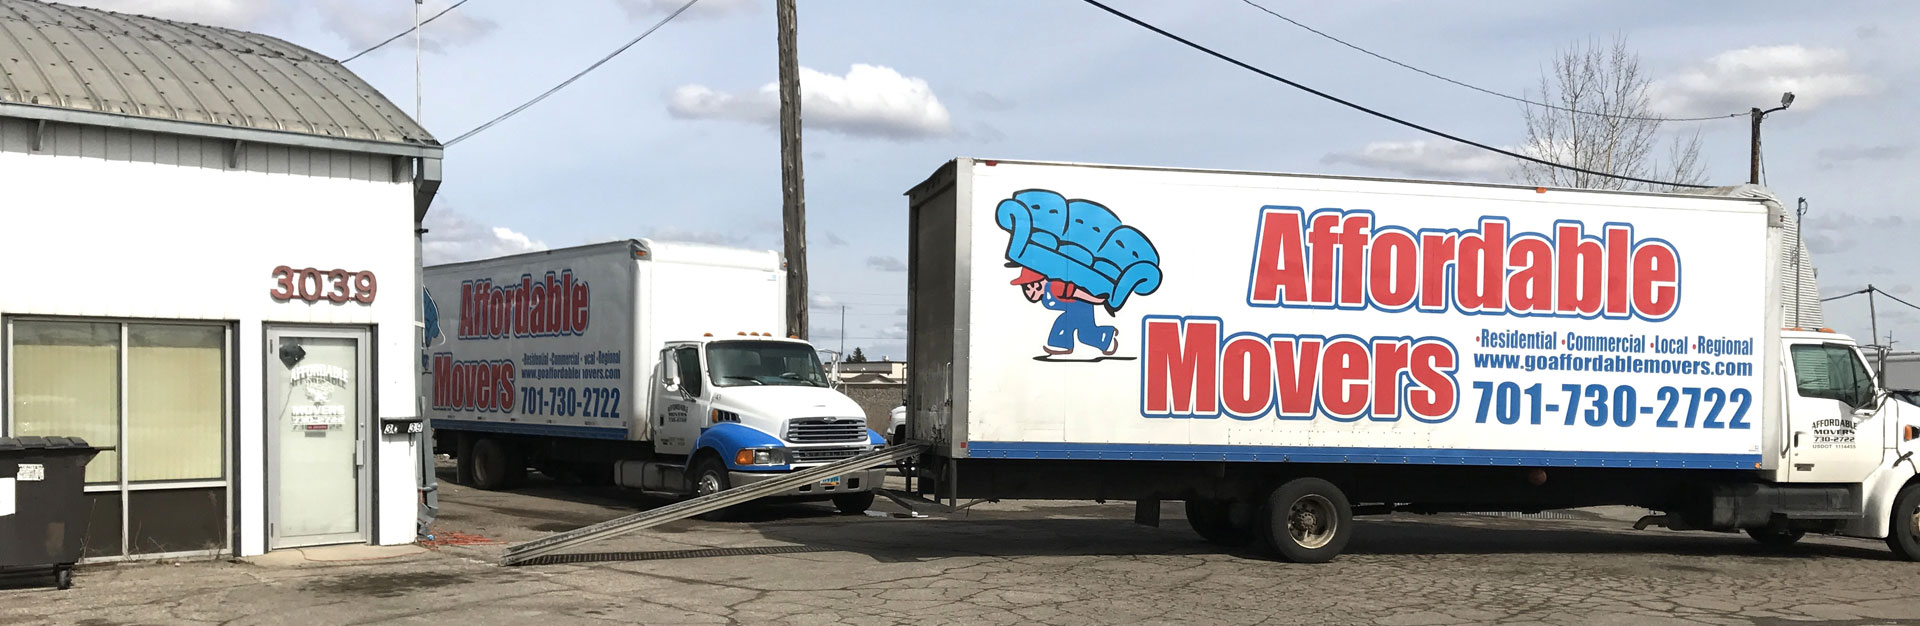 Affordable Movers - Contact Us